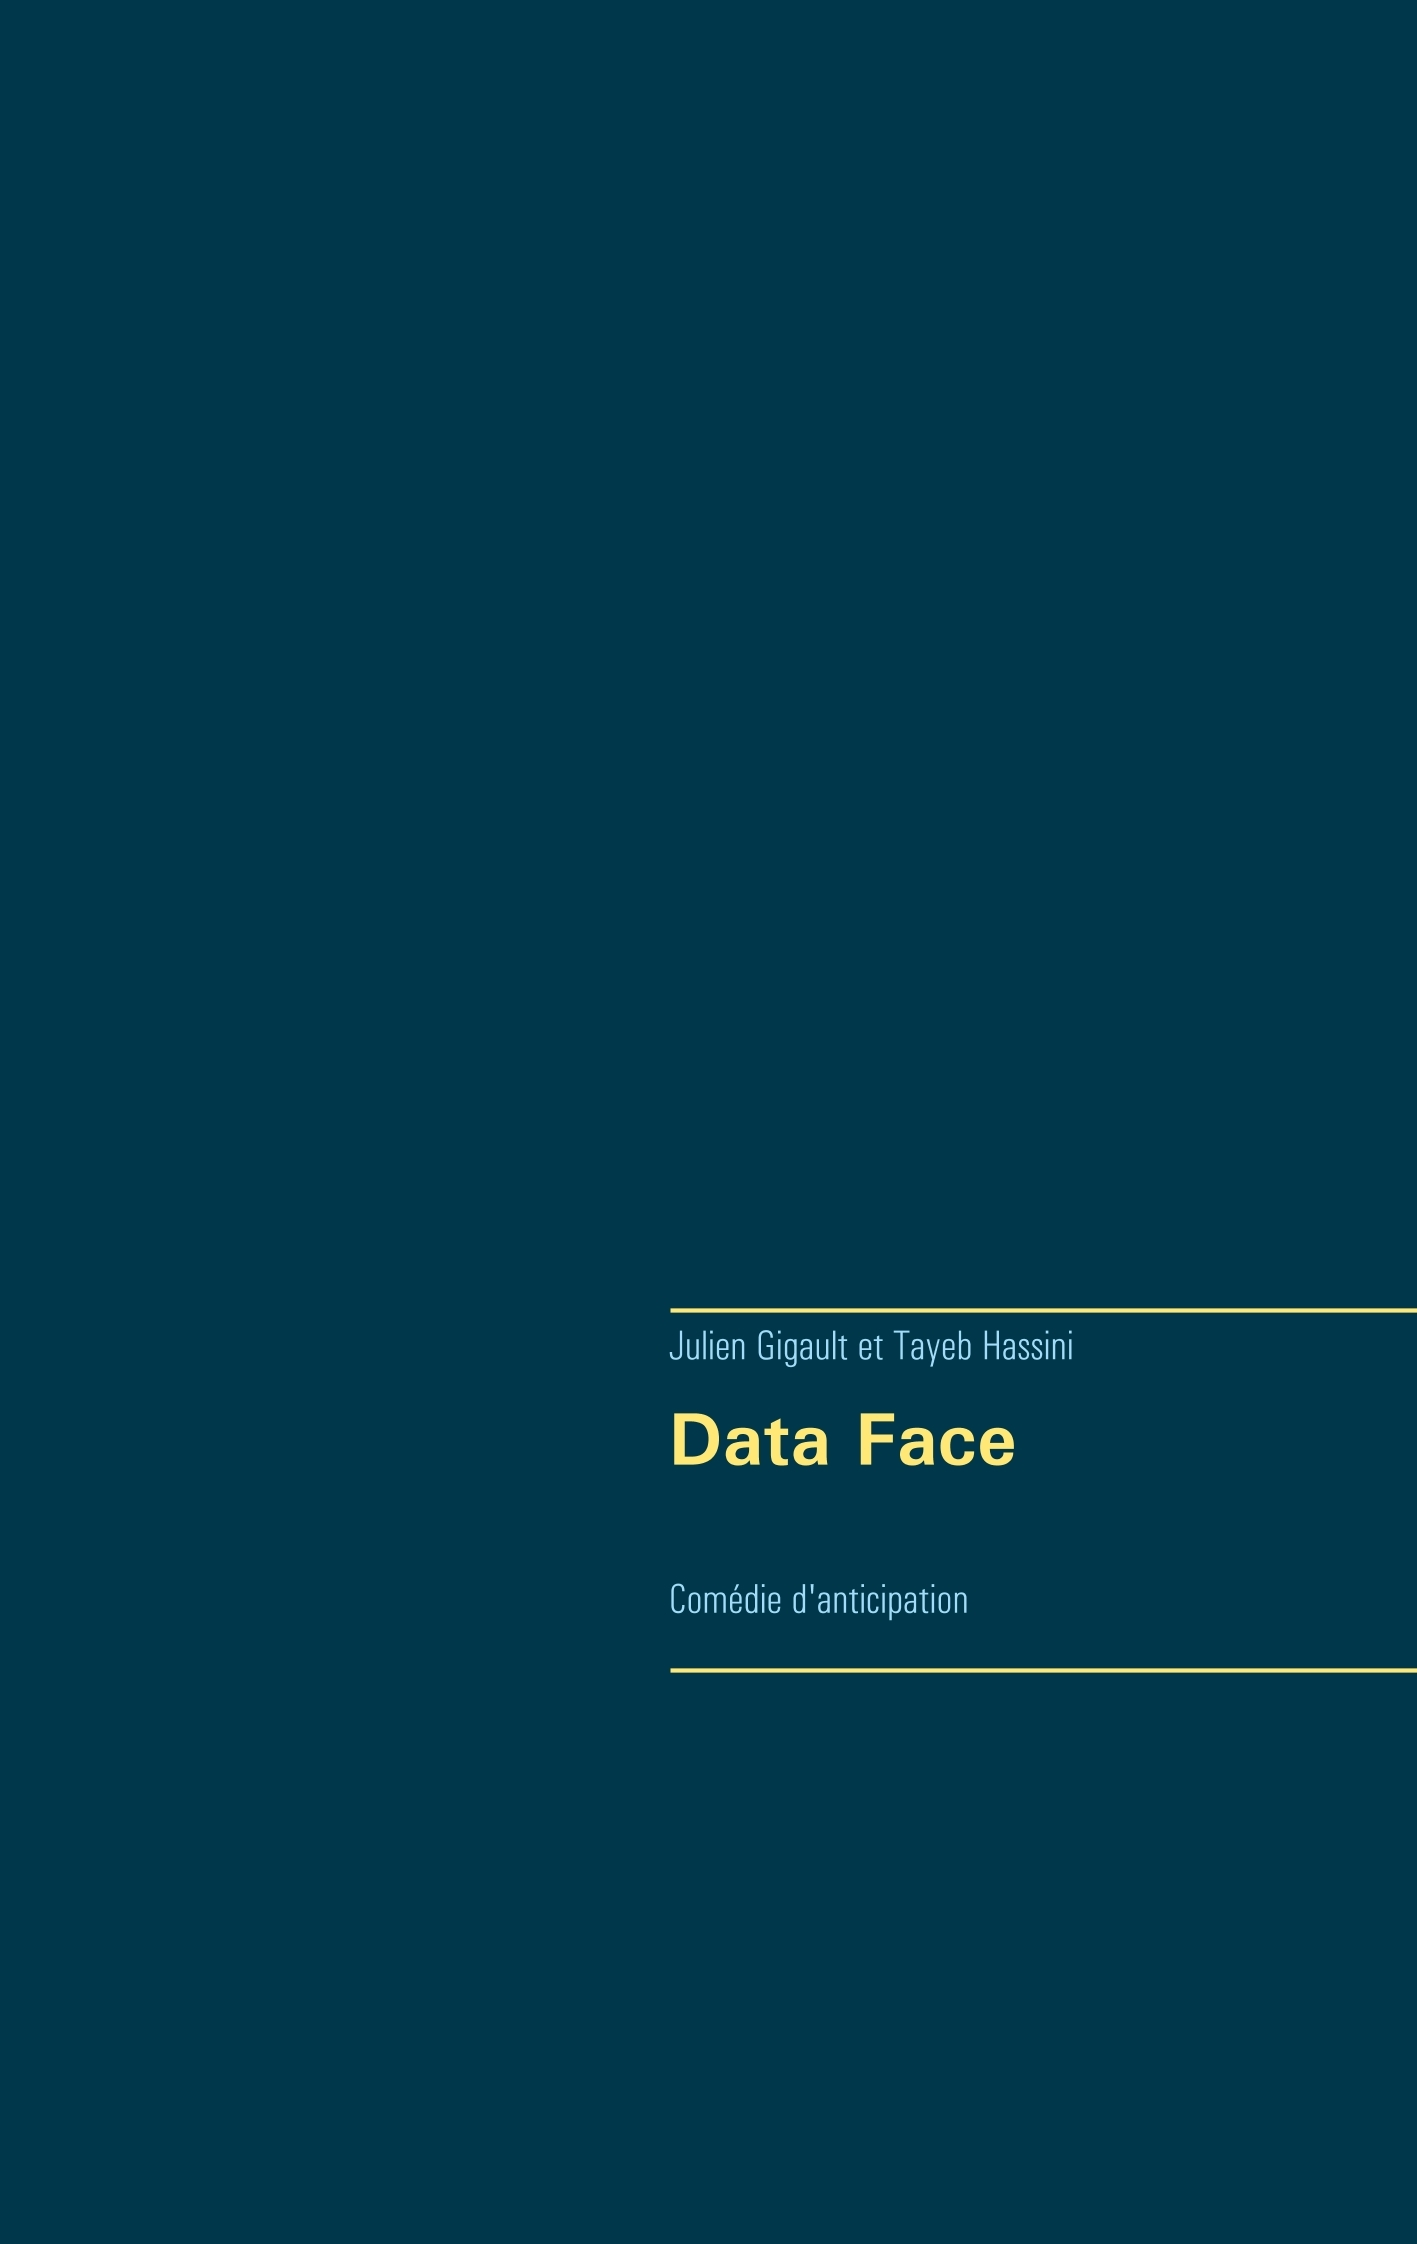 DATA FACE - COMEDIE D'ANTICIPATION